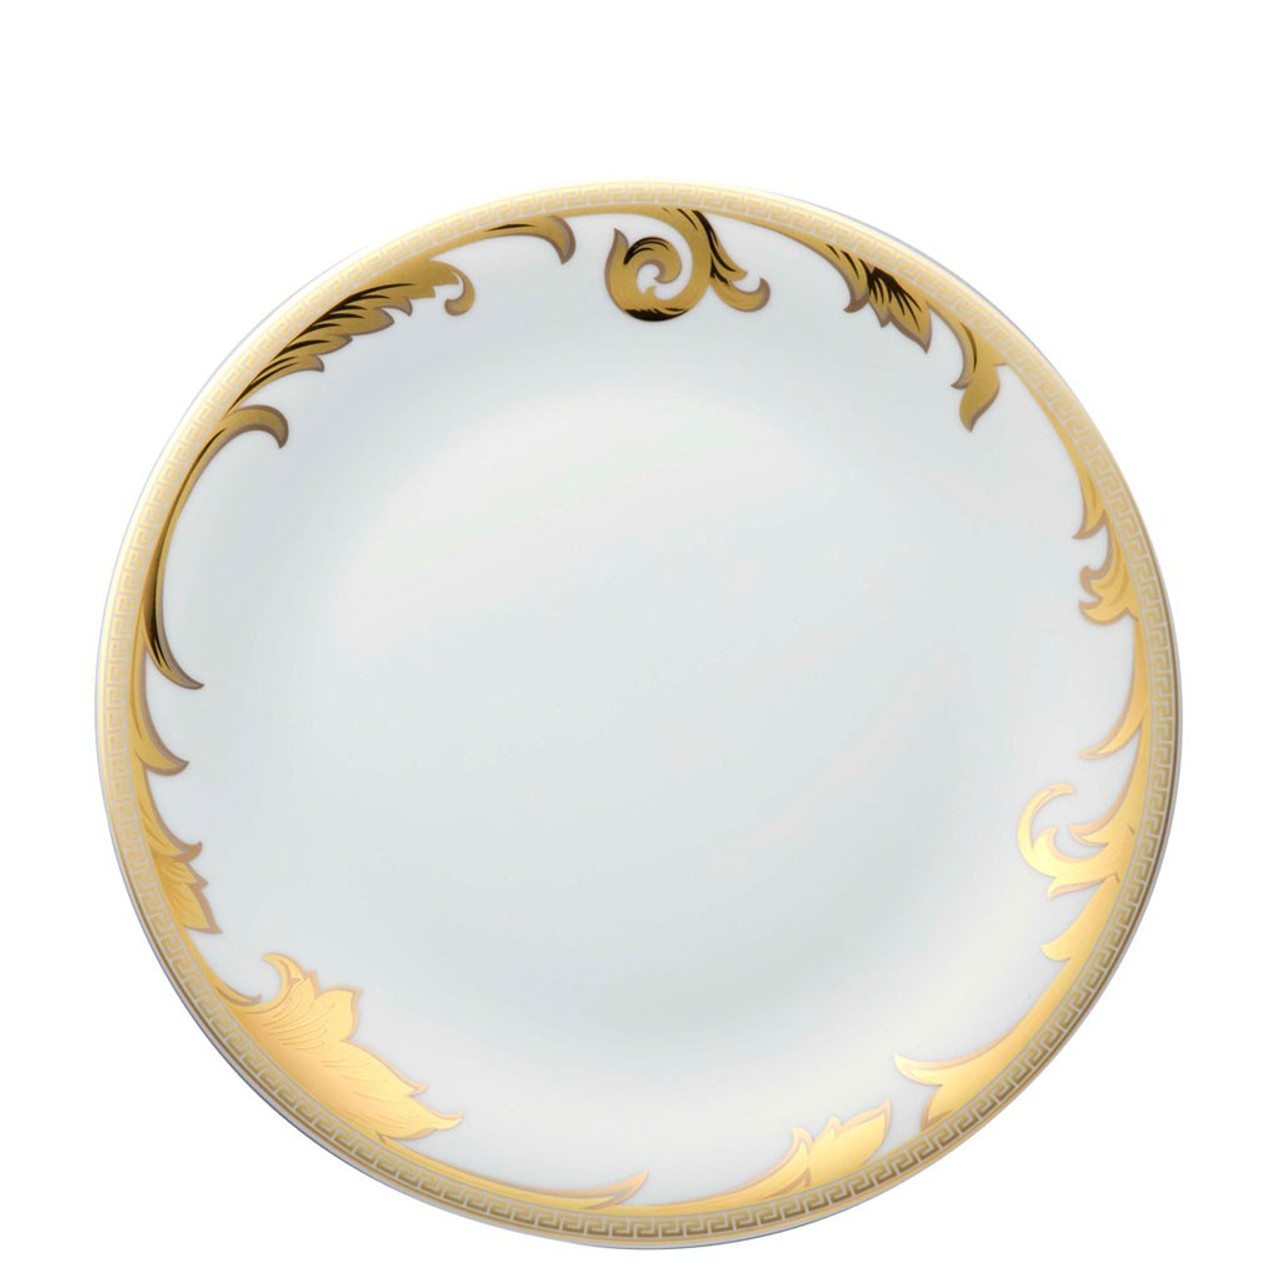 Dinner Plate 11 1/2 inch | Versace Arabesque Gold  sc 1 st  Rosenthal & Dinner Plate 11 1/2 inch | Arabesque Gold| Rosenthal Shop